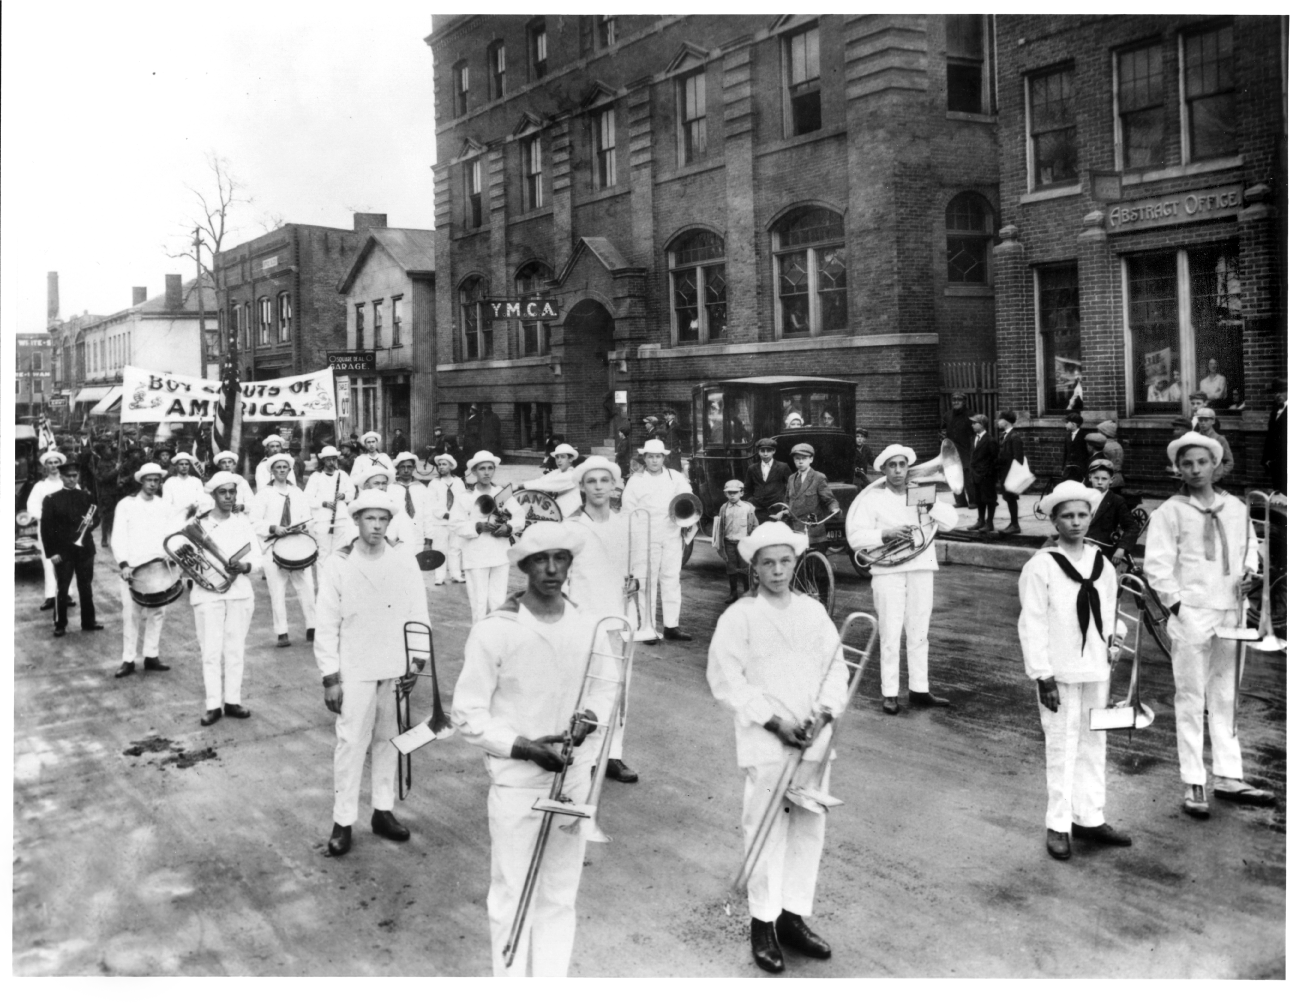 Van's Marine Band and Boy Scouts of America Parade on Fourth between Ann St. and East Huron St., ca 1916 image